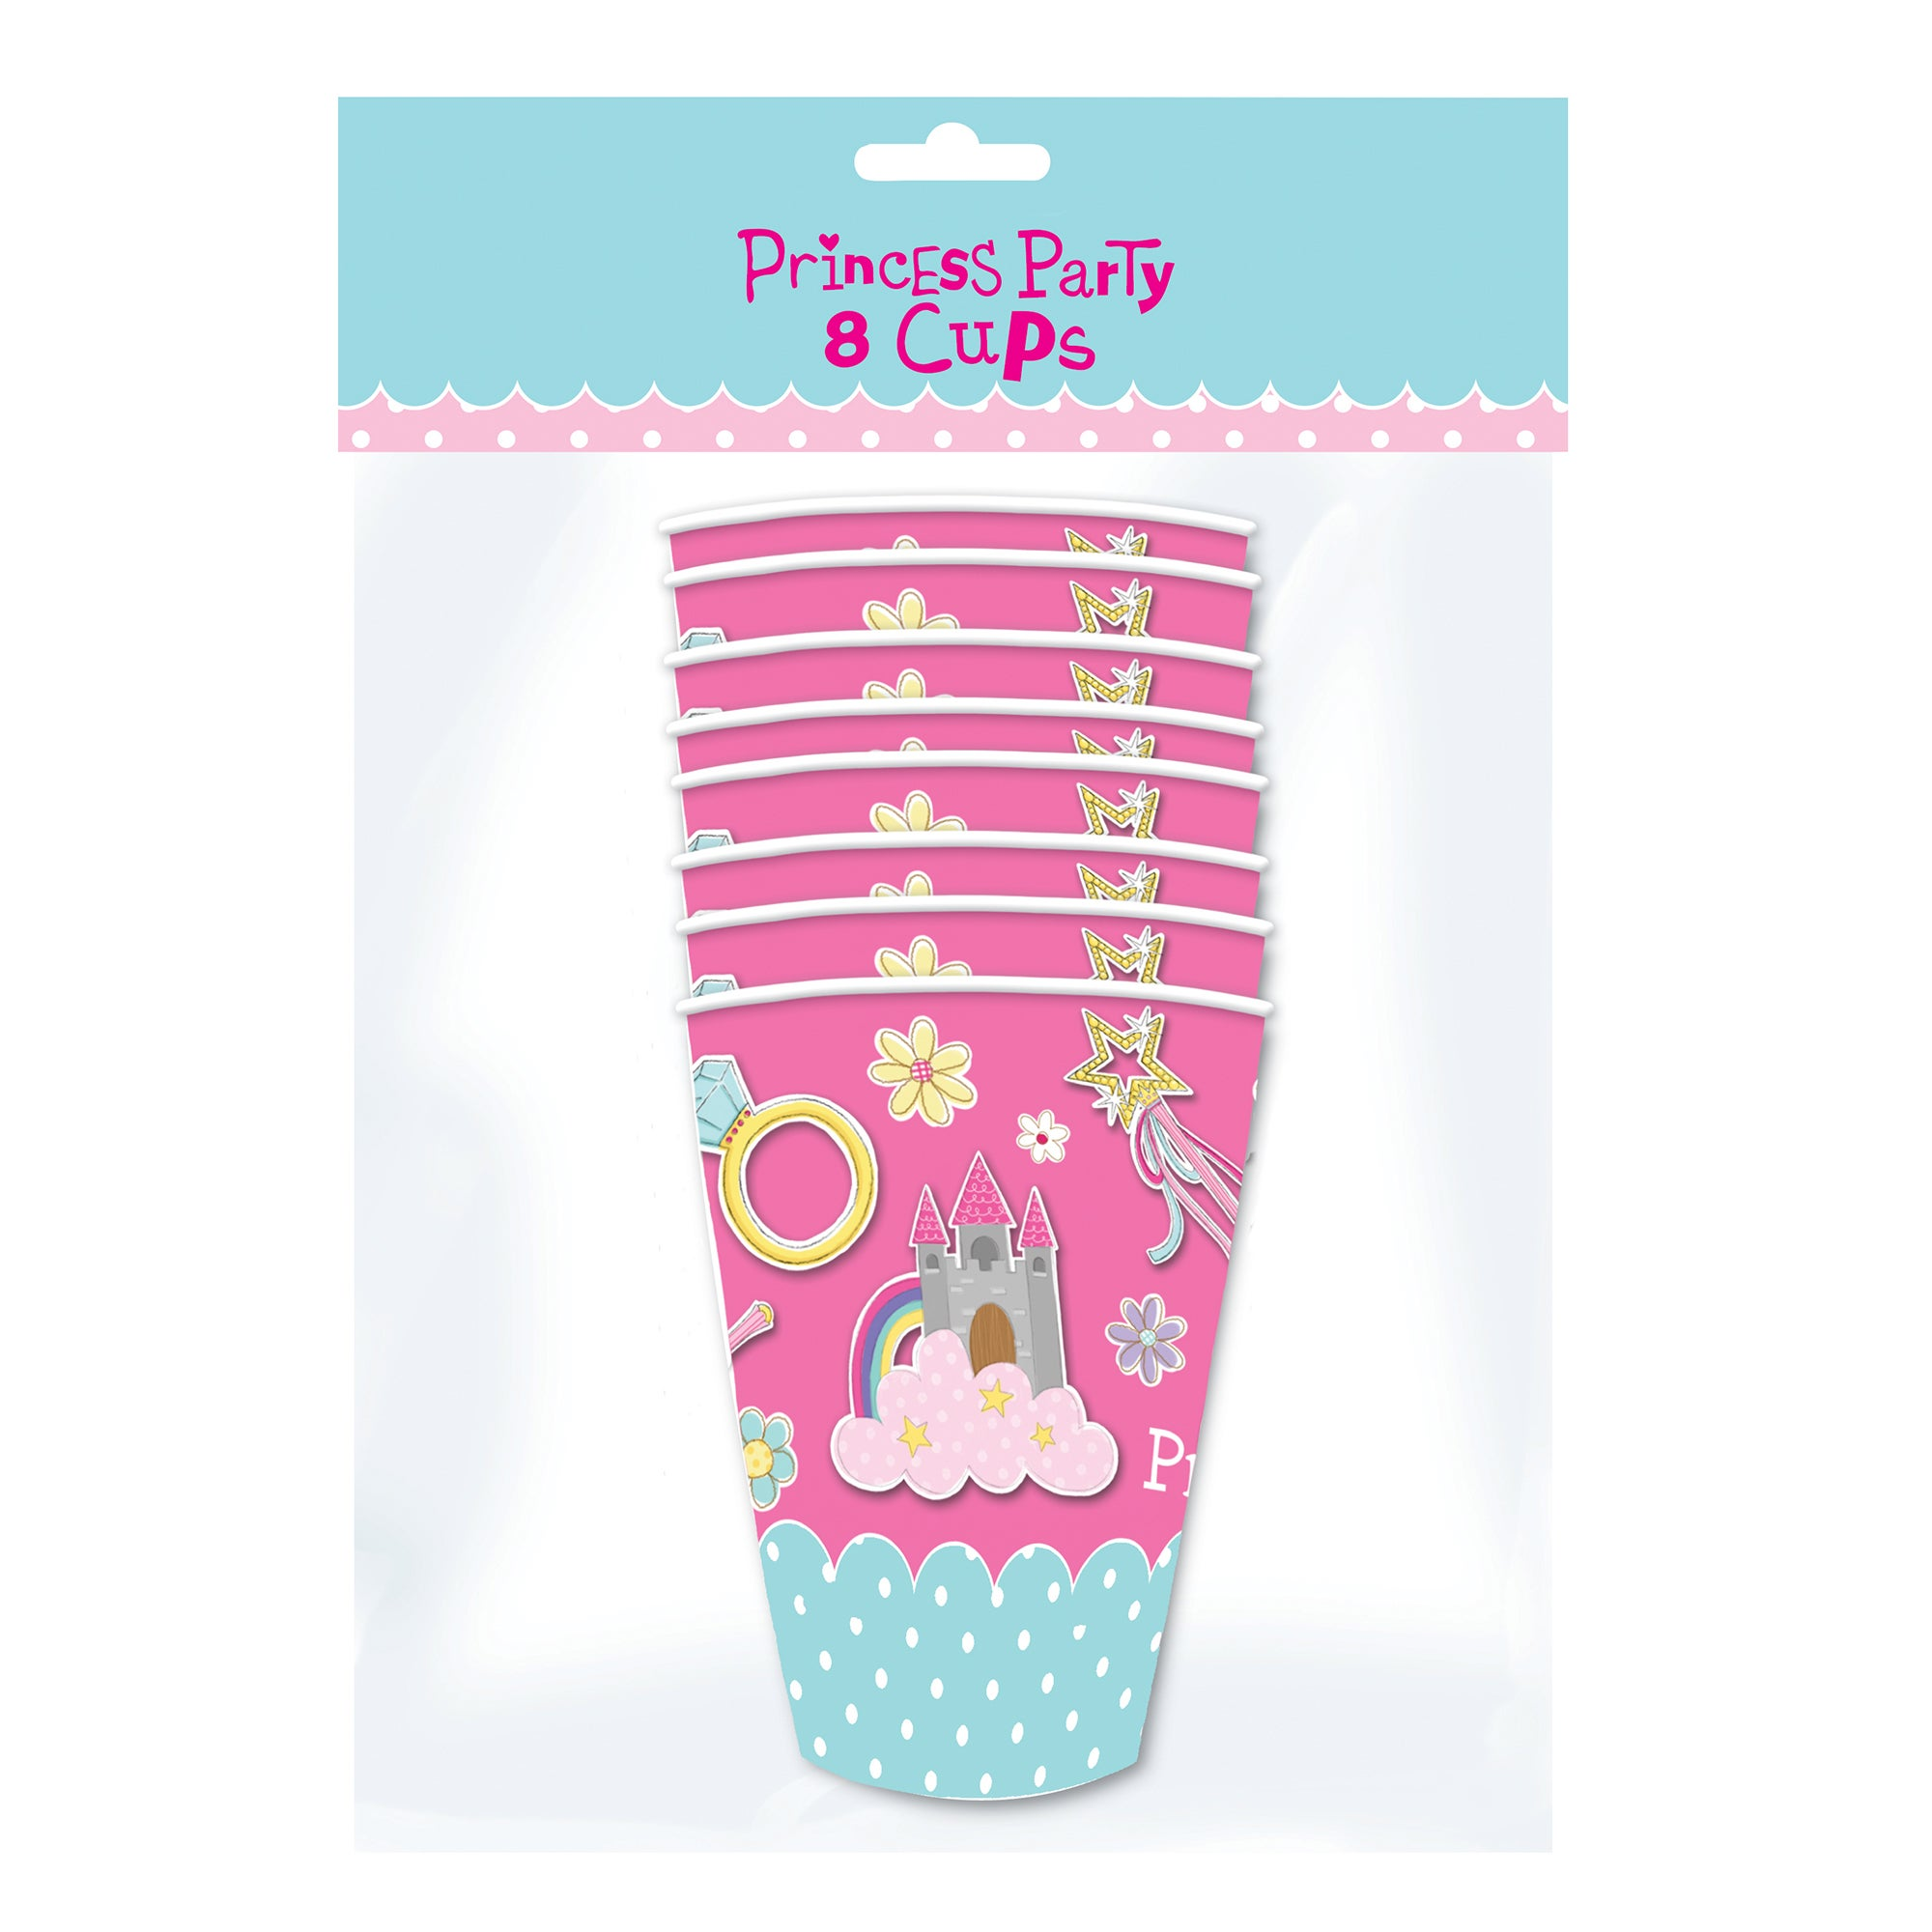 Princess Party Pack of 8 Cups